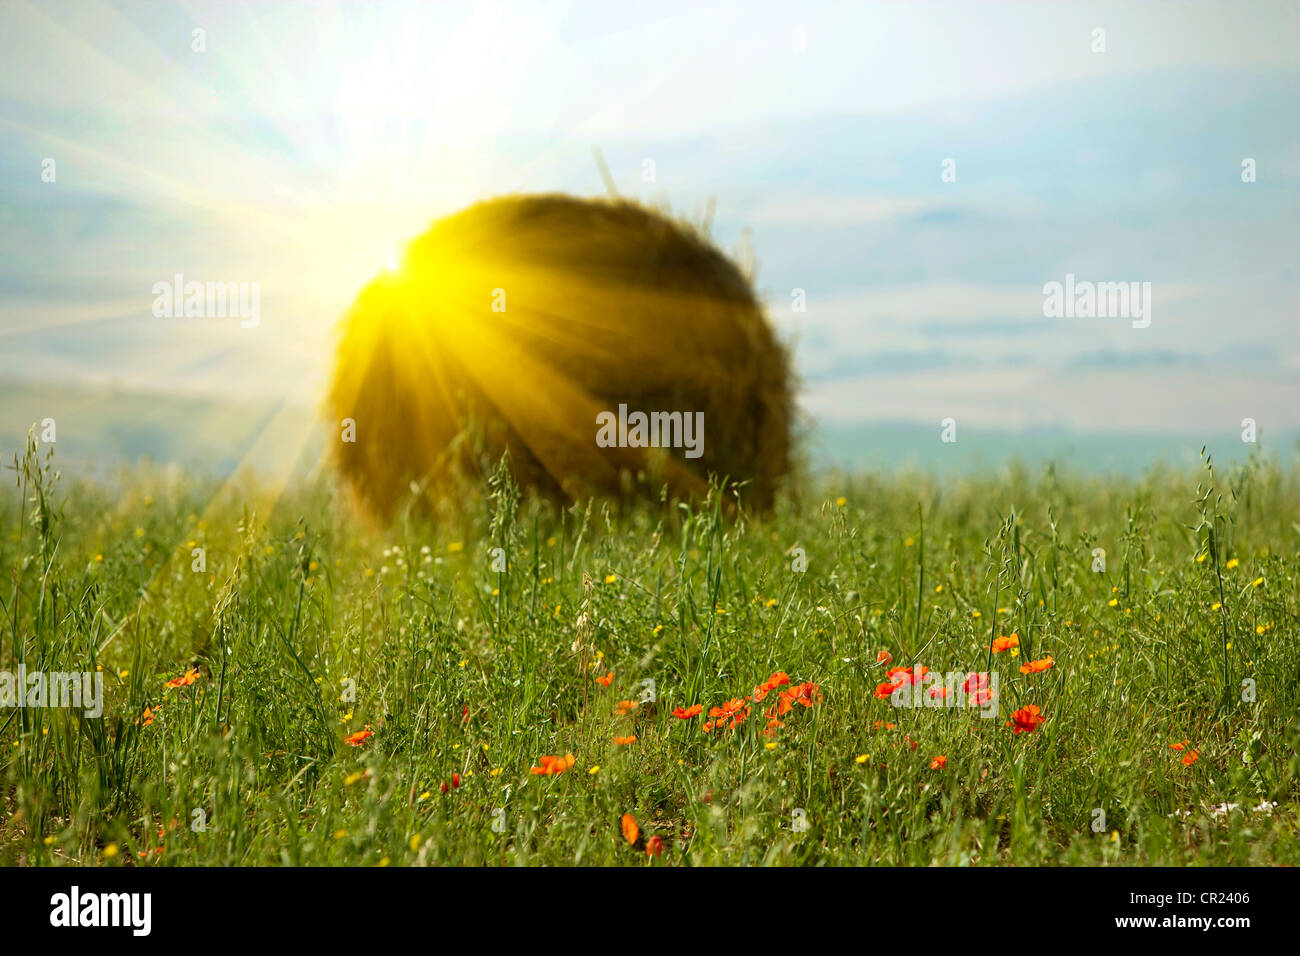 Sun shining over haybale in wheatfield - Stock Image